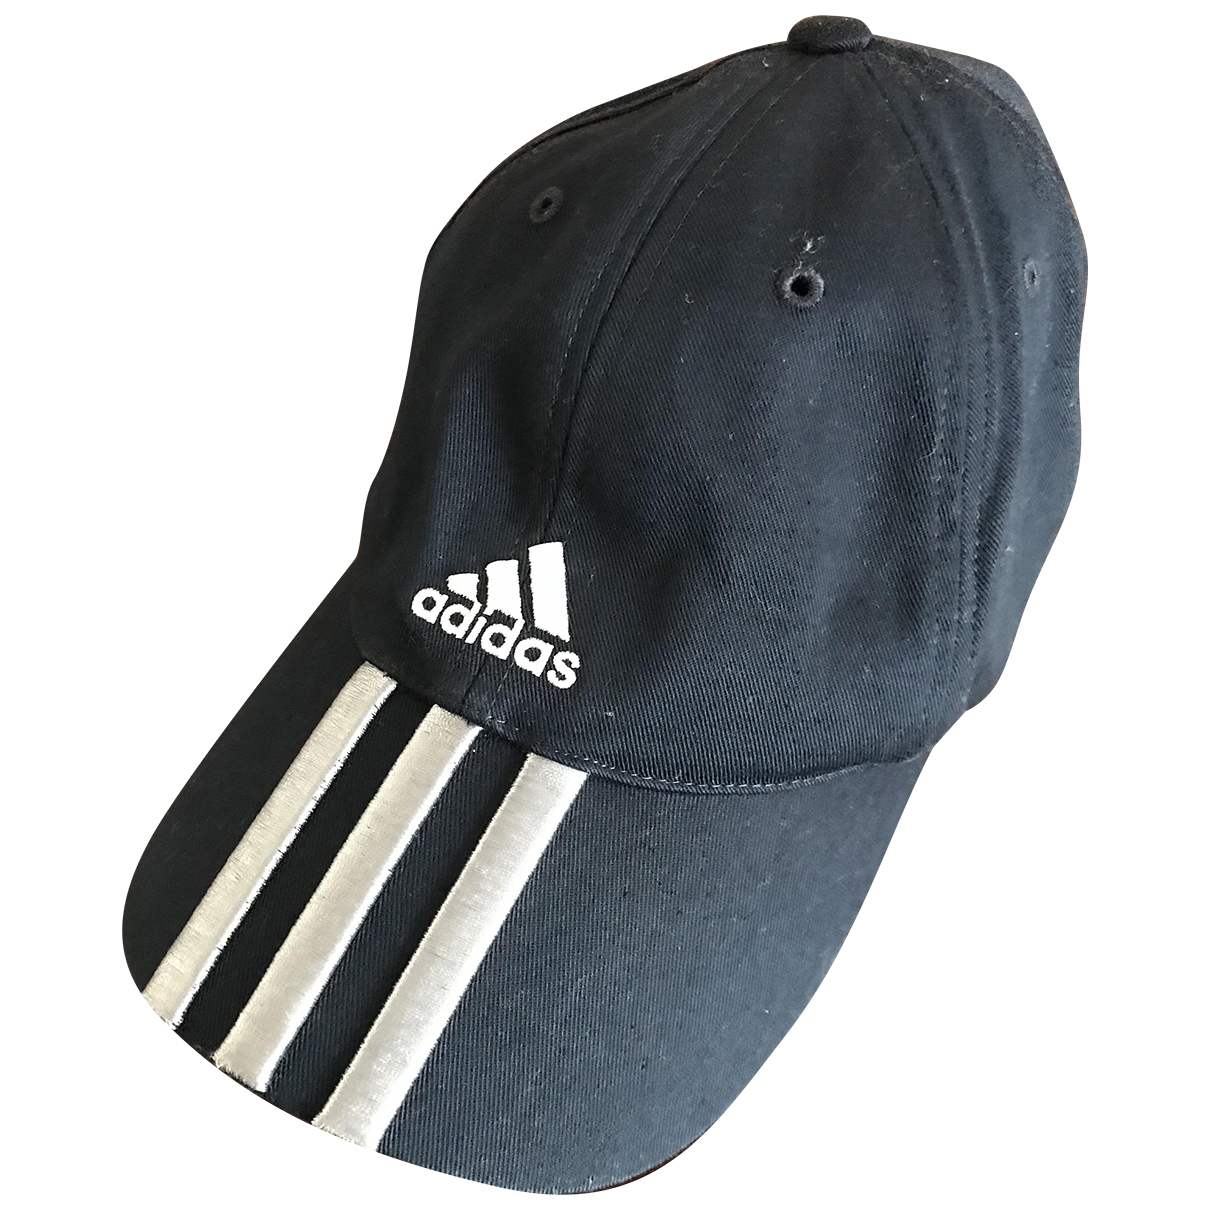 Adidas \N Blue Cotton hat & pull on hat for Men S International